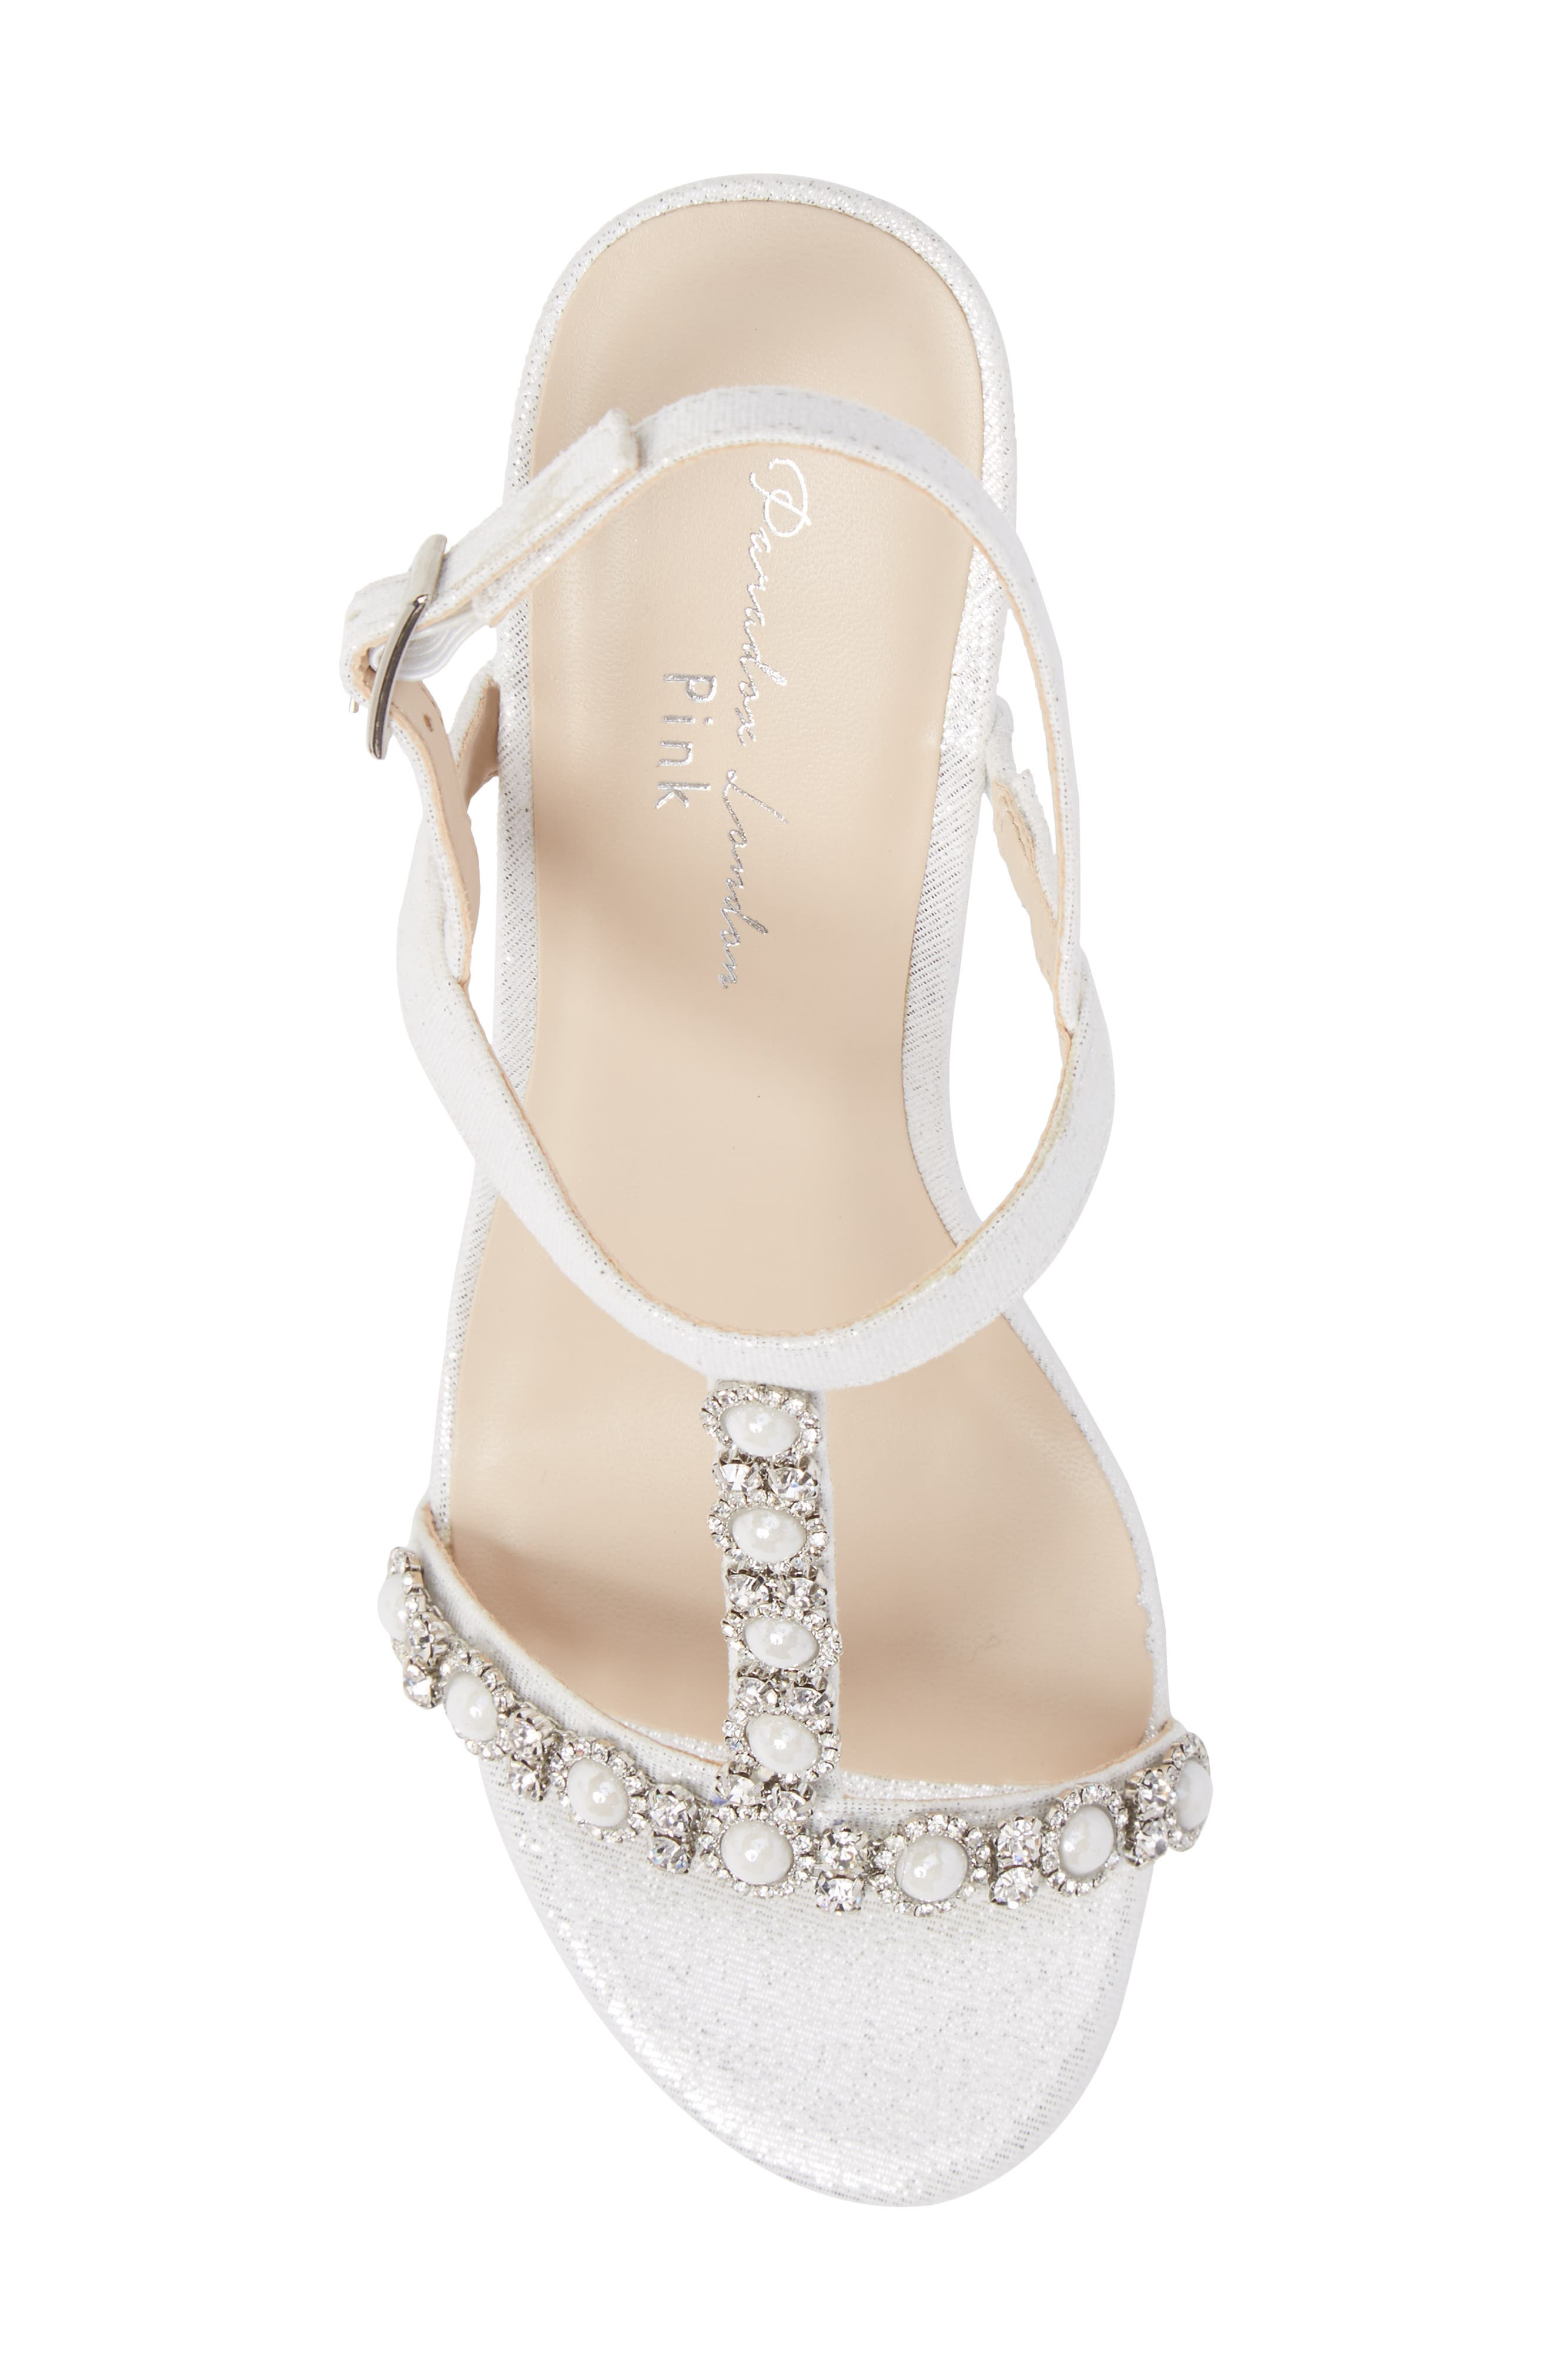 Kiana Embellished Wedge Sandal,                             Alternate thumbnail 5, color,                             Silver Glitter